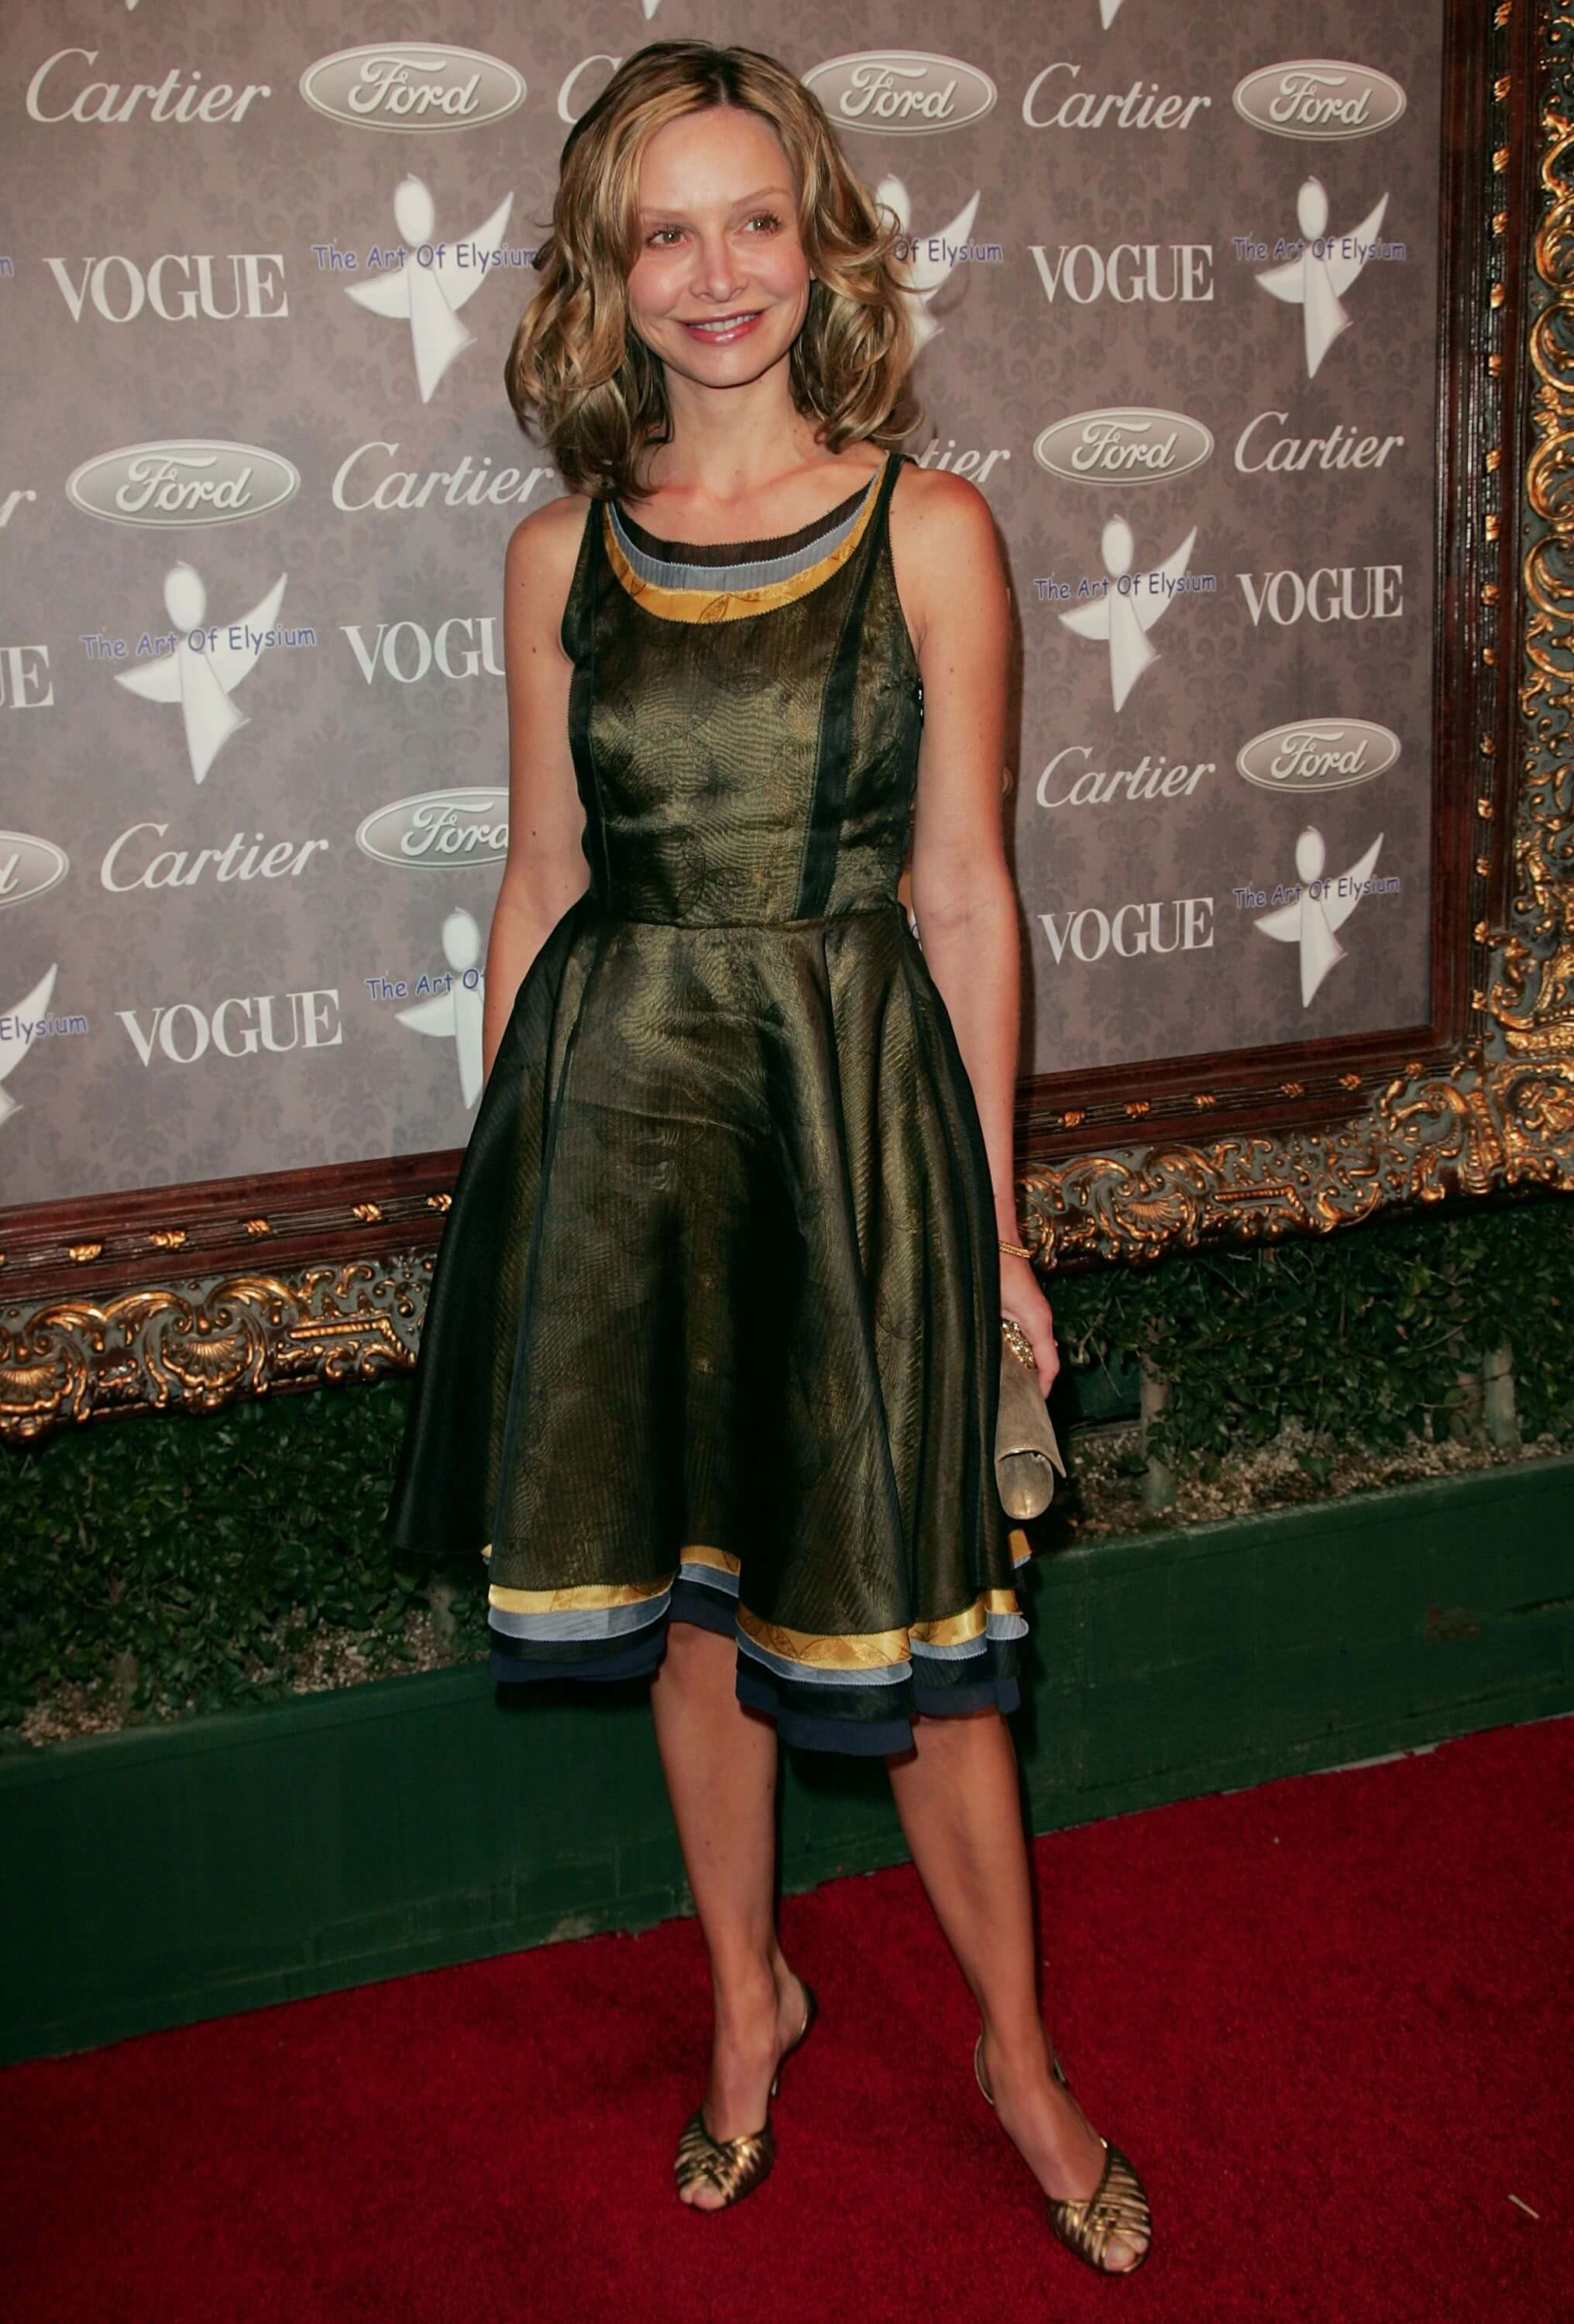 Calista Flockhart hot photos